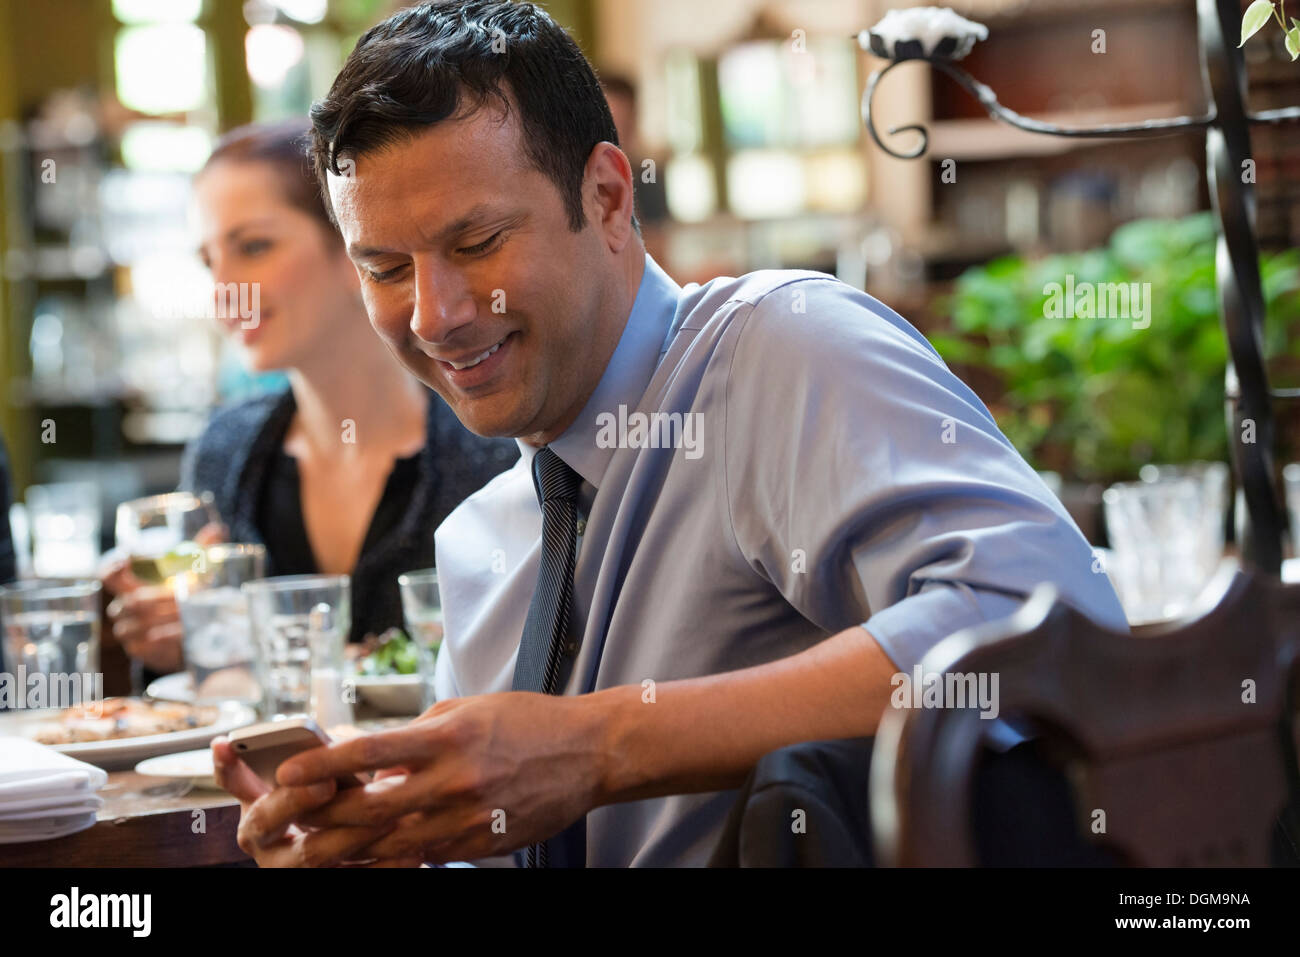 Business people. Three people around a cafe table, one of whom is checking their phone. - Stock Image